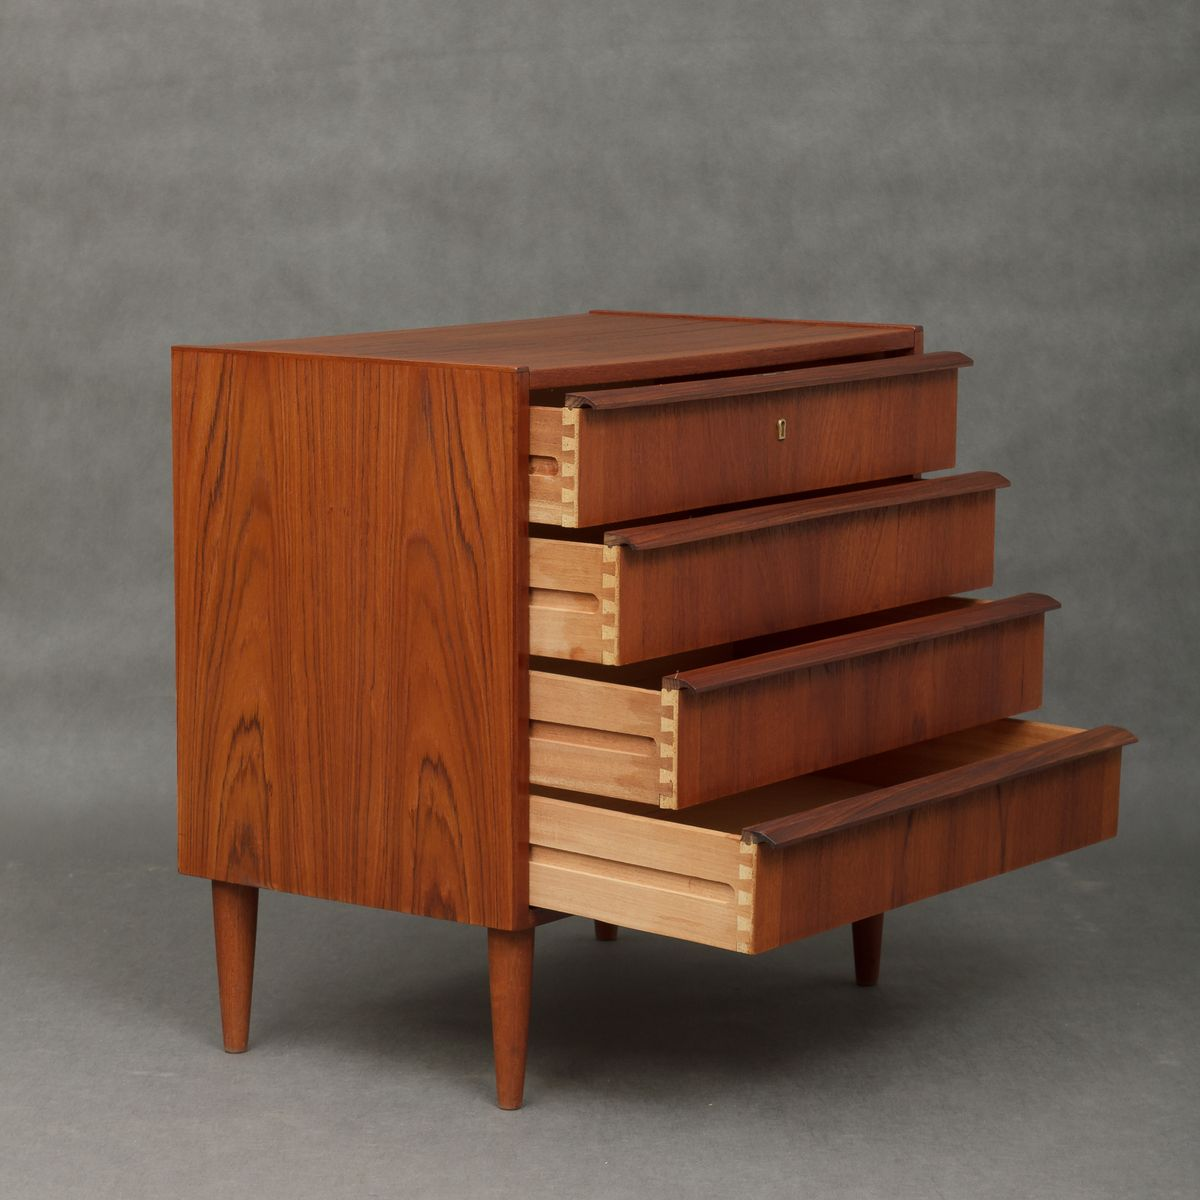 d nische mid century teak kommode mit vier schubladen 1960er bei pamono kaufen. Black Bedroom Furniture Sets. Home Design Ideas